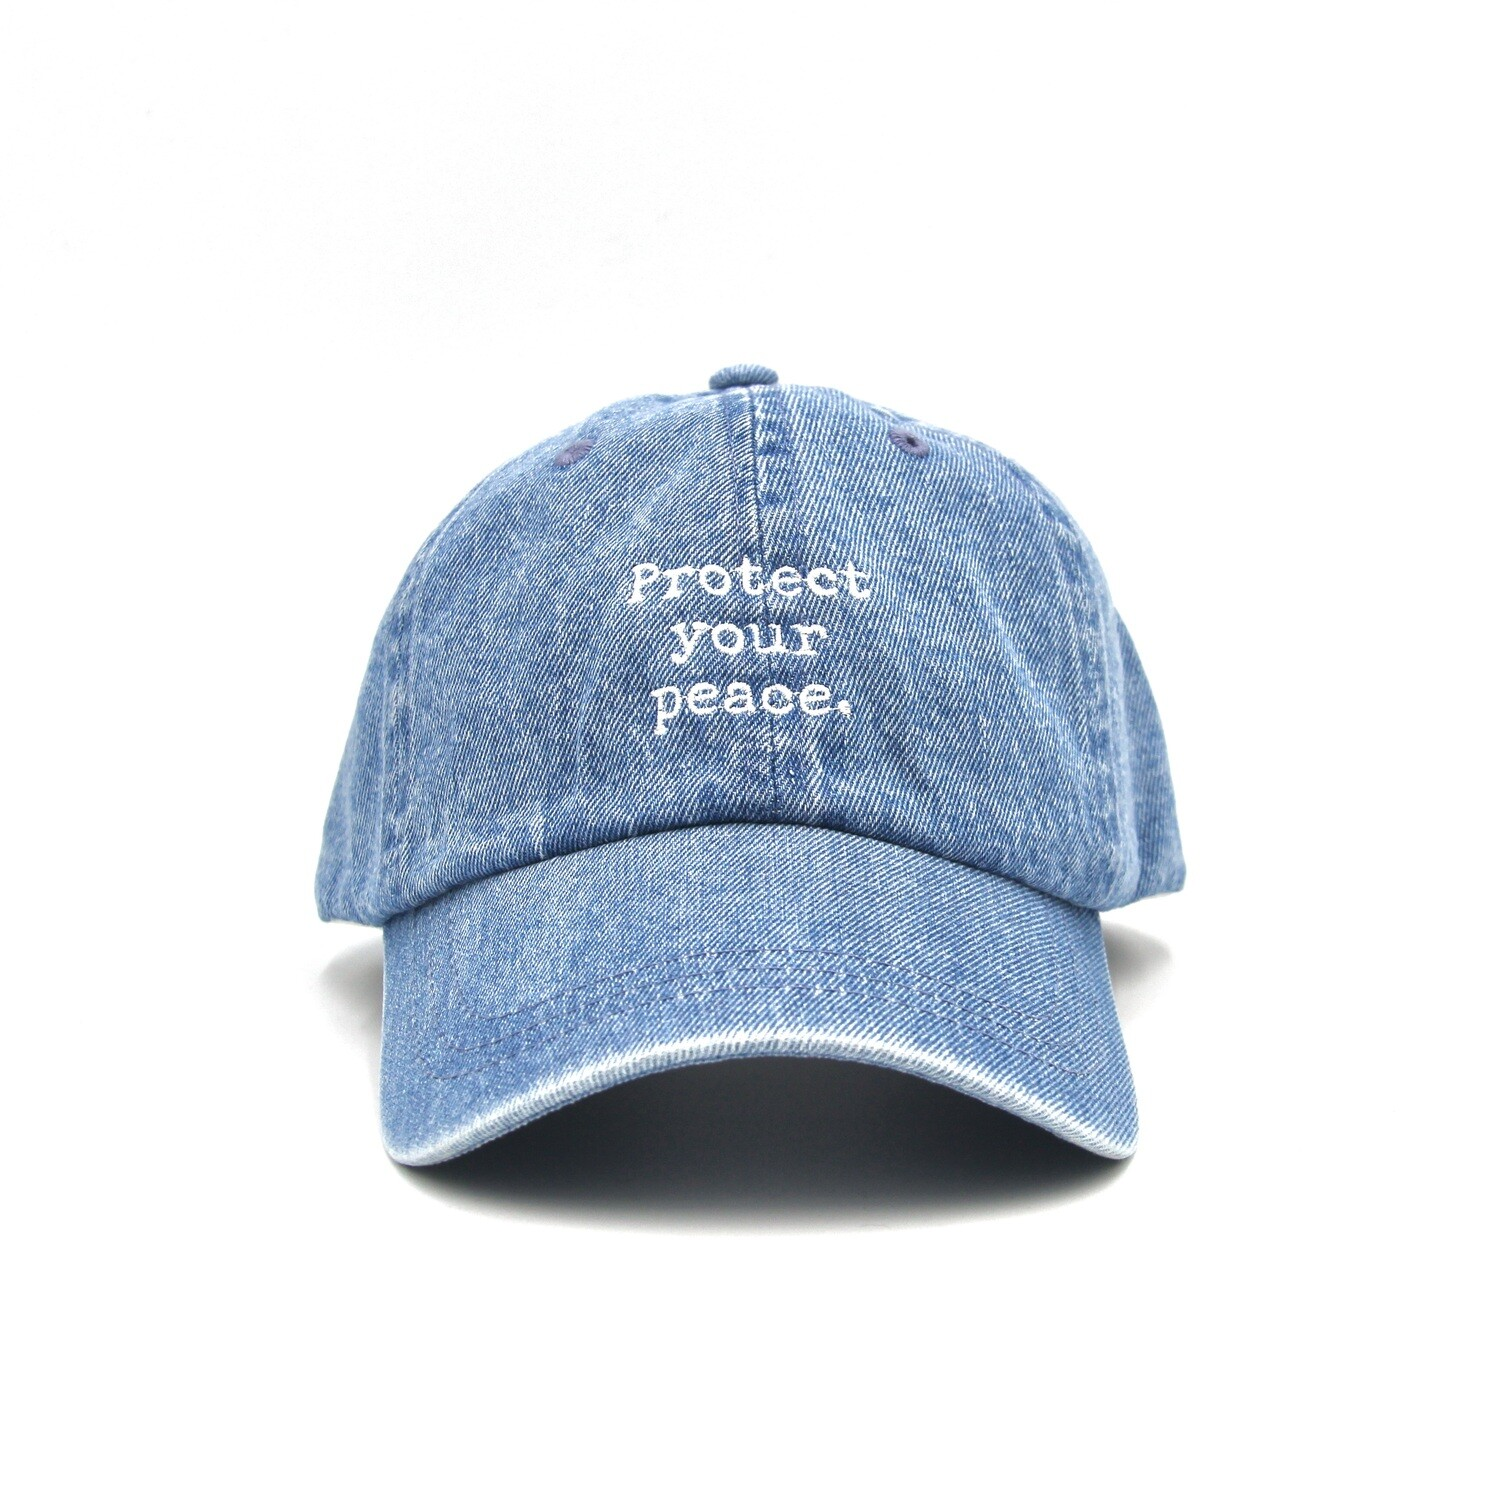 Protect Your Peace Denim Dad Cap